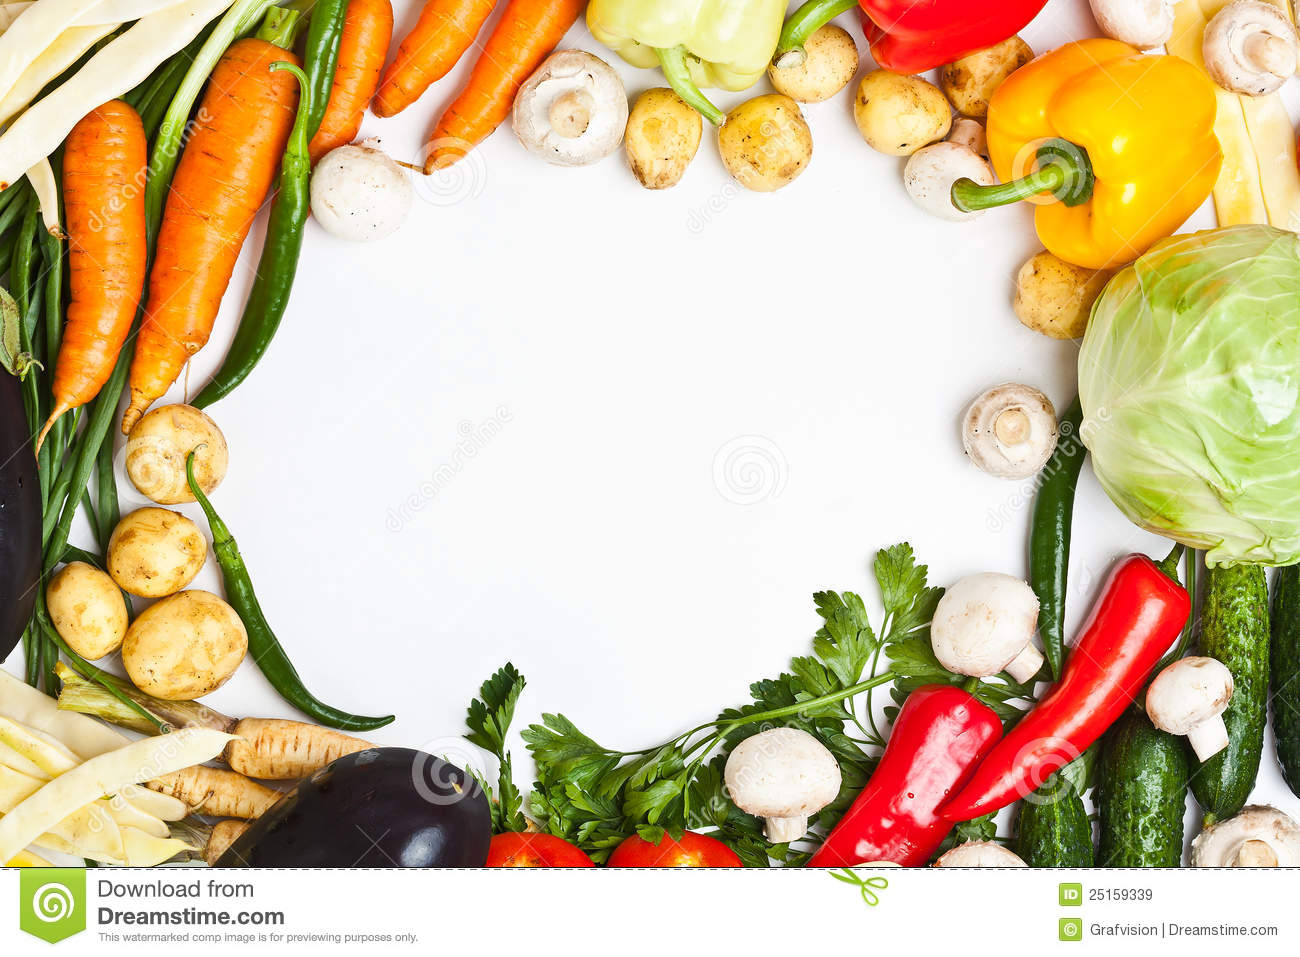 Colorful vegetable frame stock image. Image of food, cucumber - 25159339